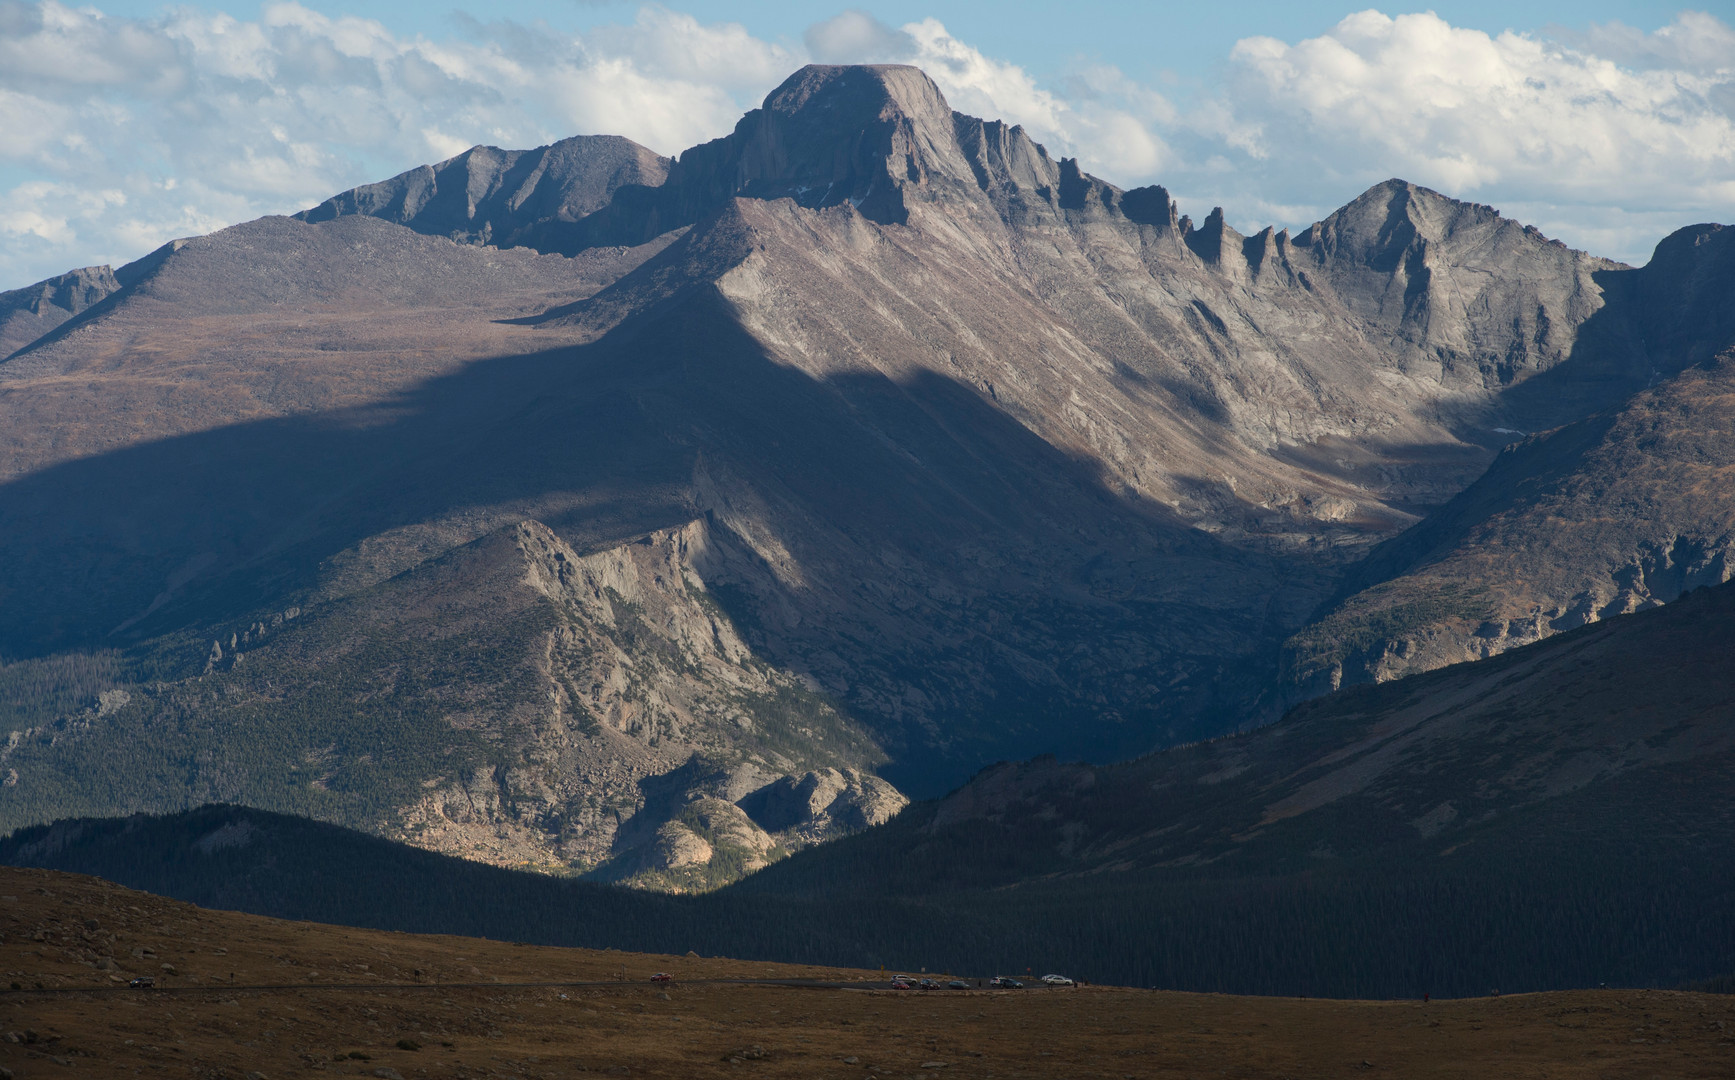 Evening light shines on Longs Peak viewed from Trail Ridge Road in Rocky Mountain National Park.